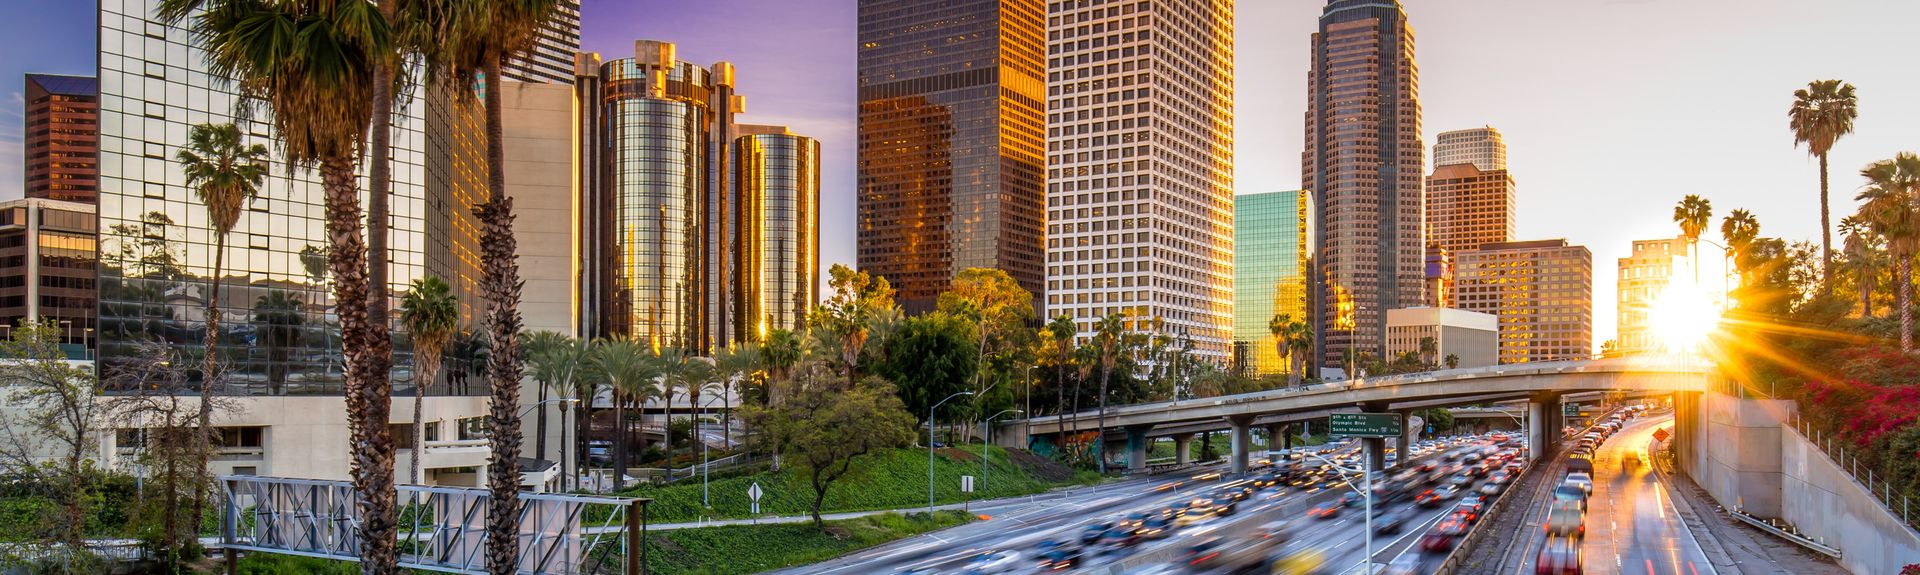 Downtown Los Angeles, Los Angeles, California, United States of America